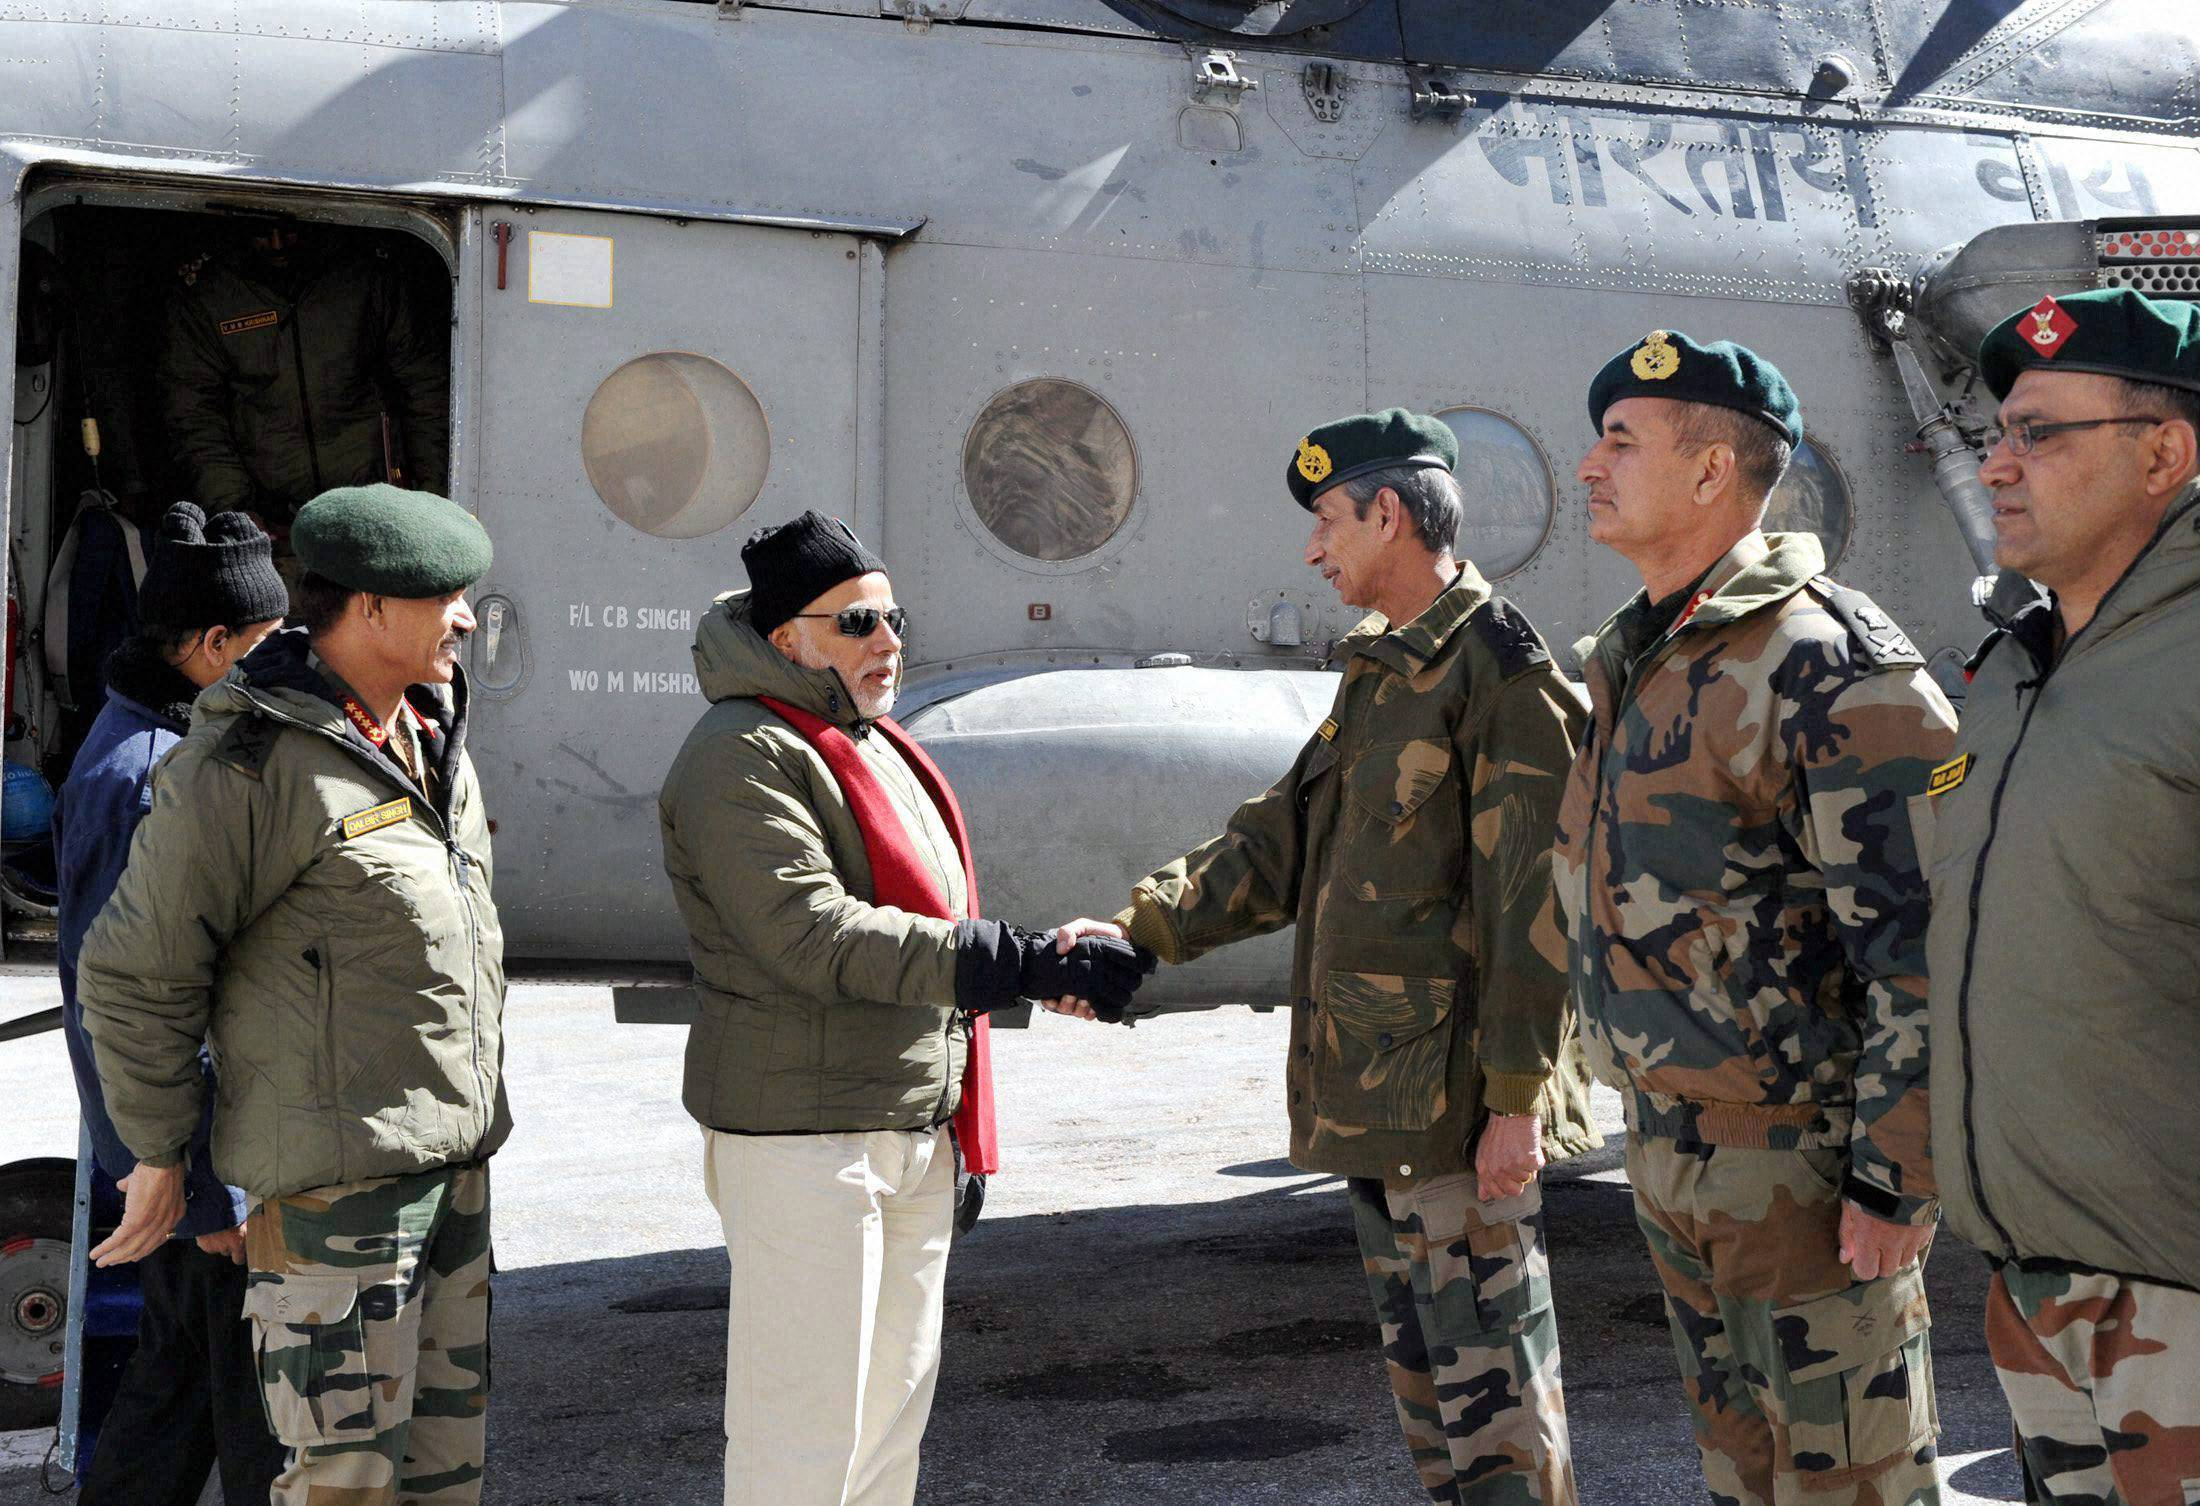 Prime Minister, Narendra Modi, received, arrival, Siachen Base Camp